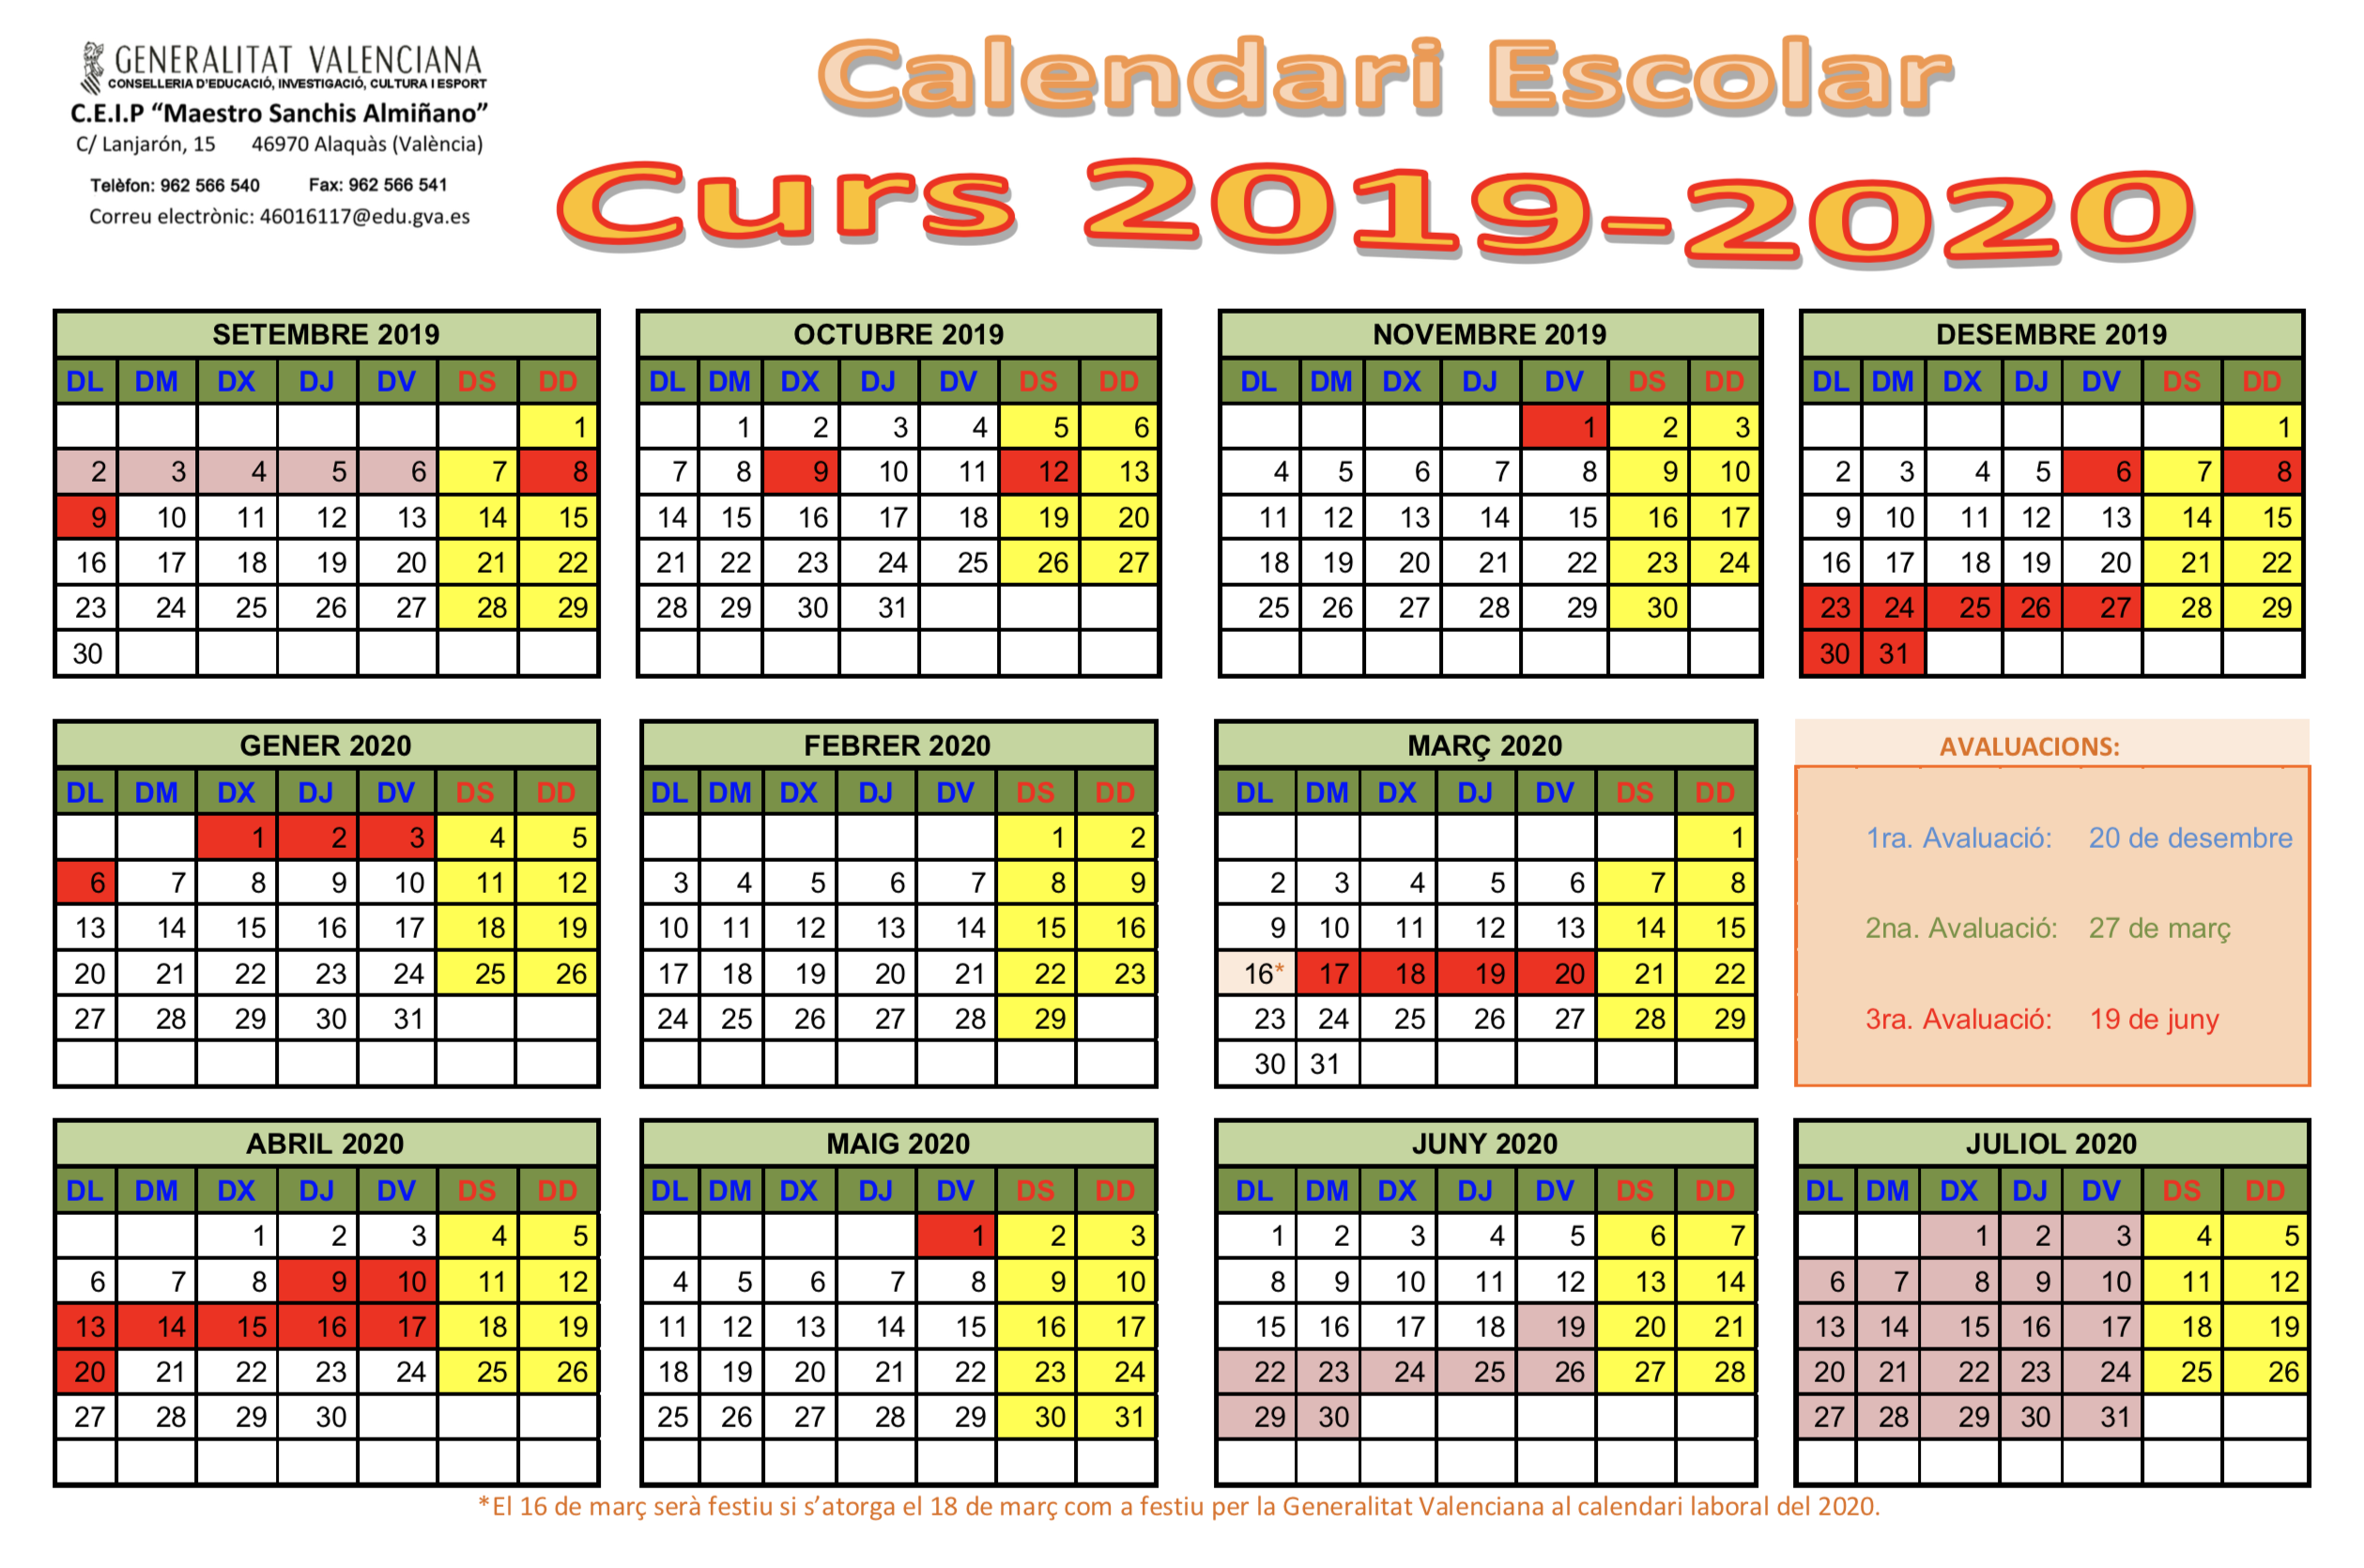 Calendario Laboral 2020 Valencia Pdf.Calendari Escolar 2019 2020